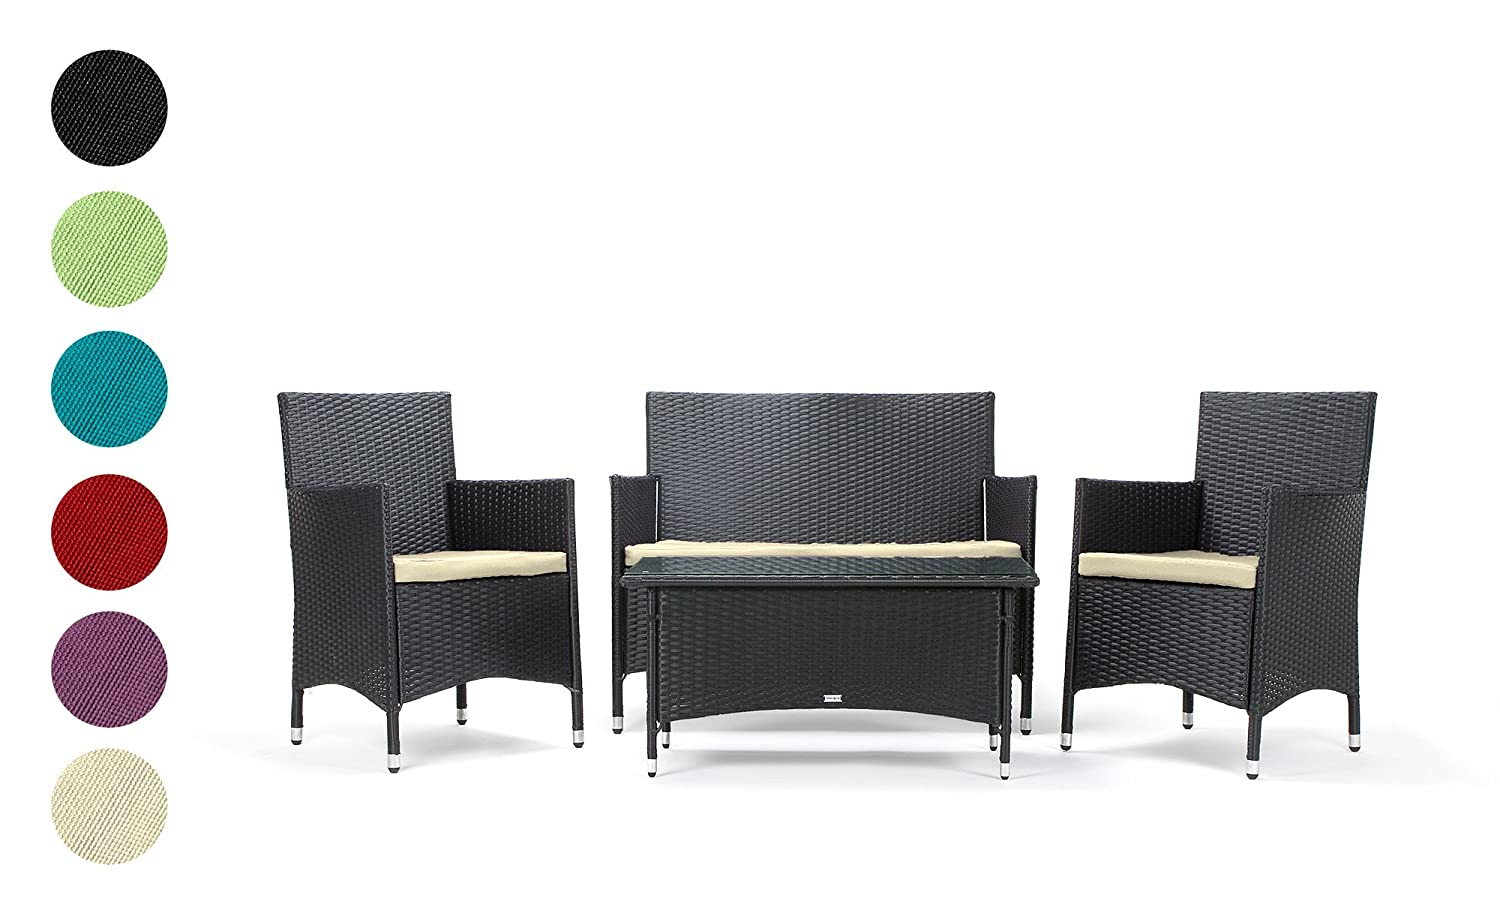 rattan gartenm bel sitzgruppe avignon 4 teilig schwarz stahlrahmen hochwertig handgeflochten 3. Black Bedroom Furniture Sets. Home Design Ideas